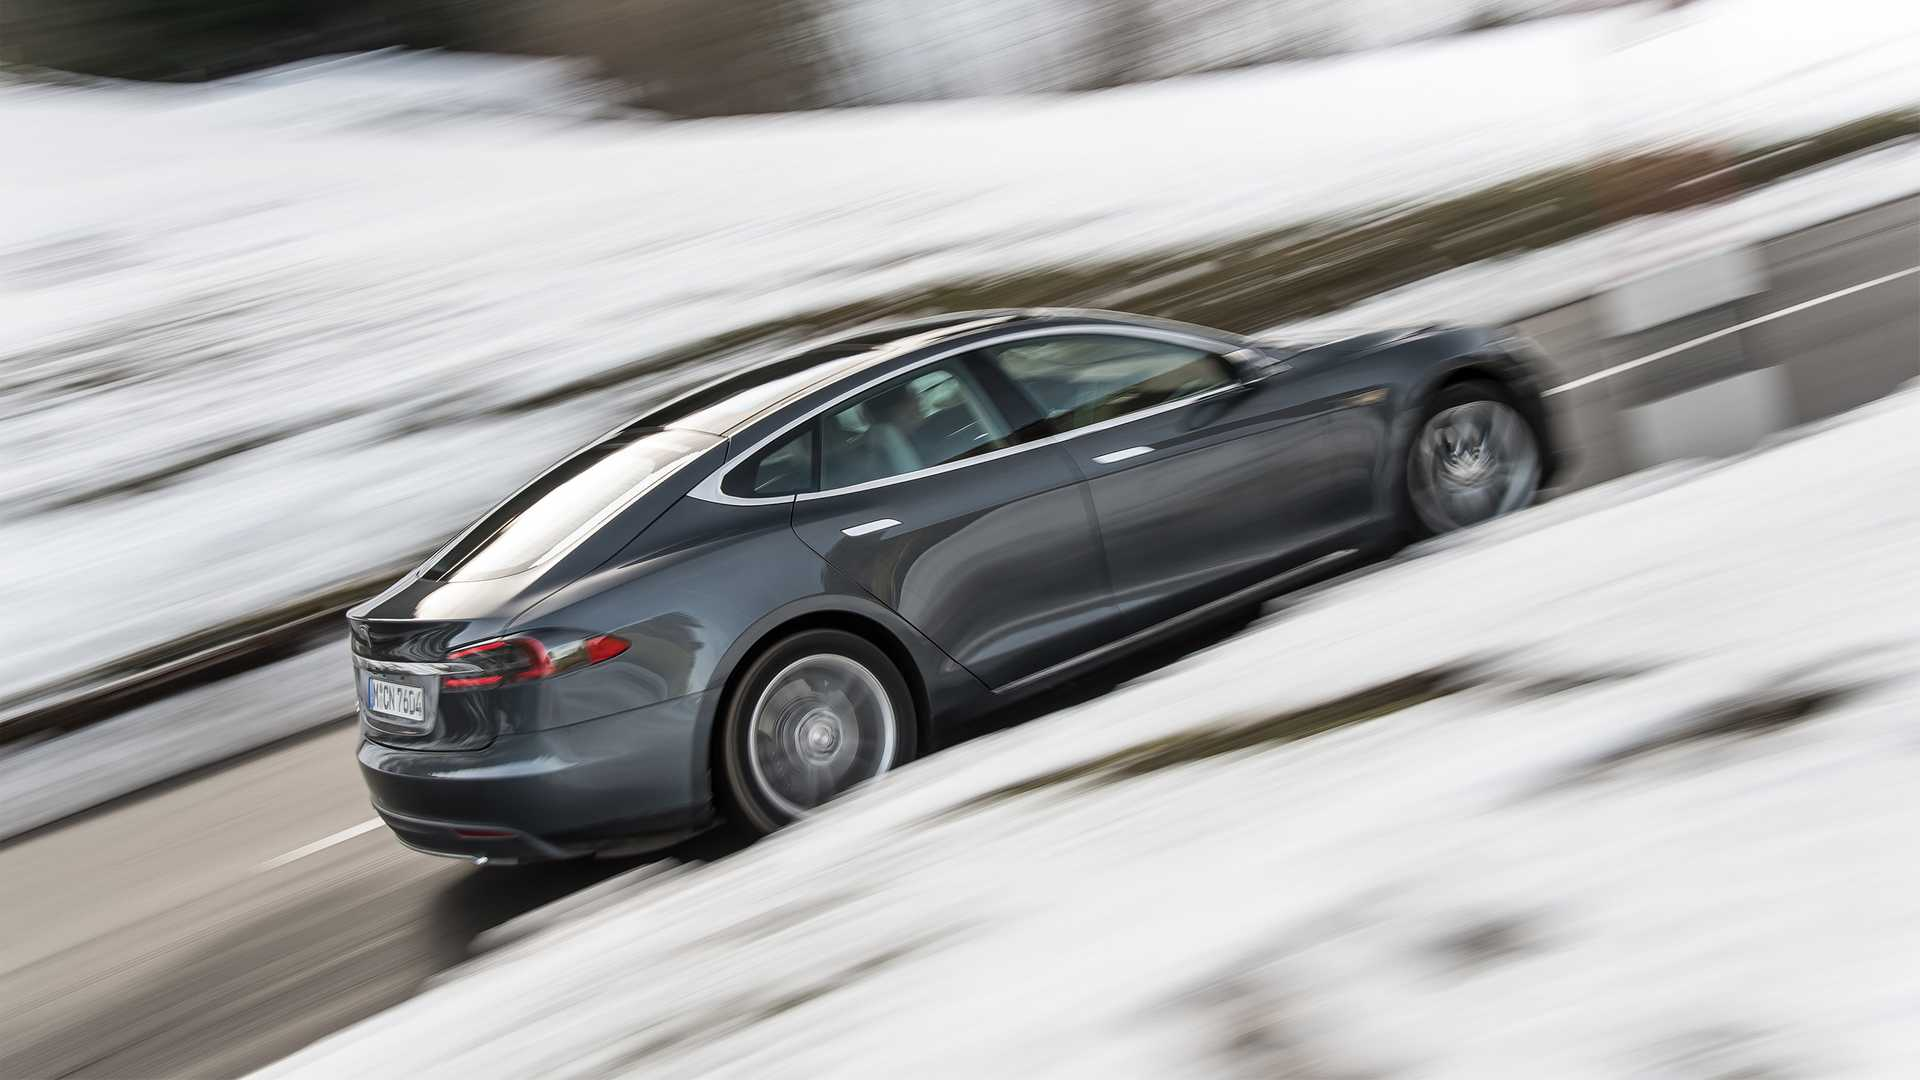 Tax Exemptions in Norway Cut Tesla Model S Price in Half